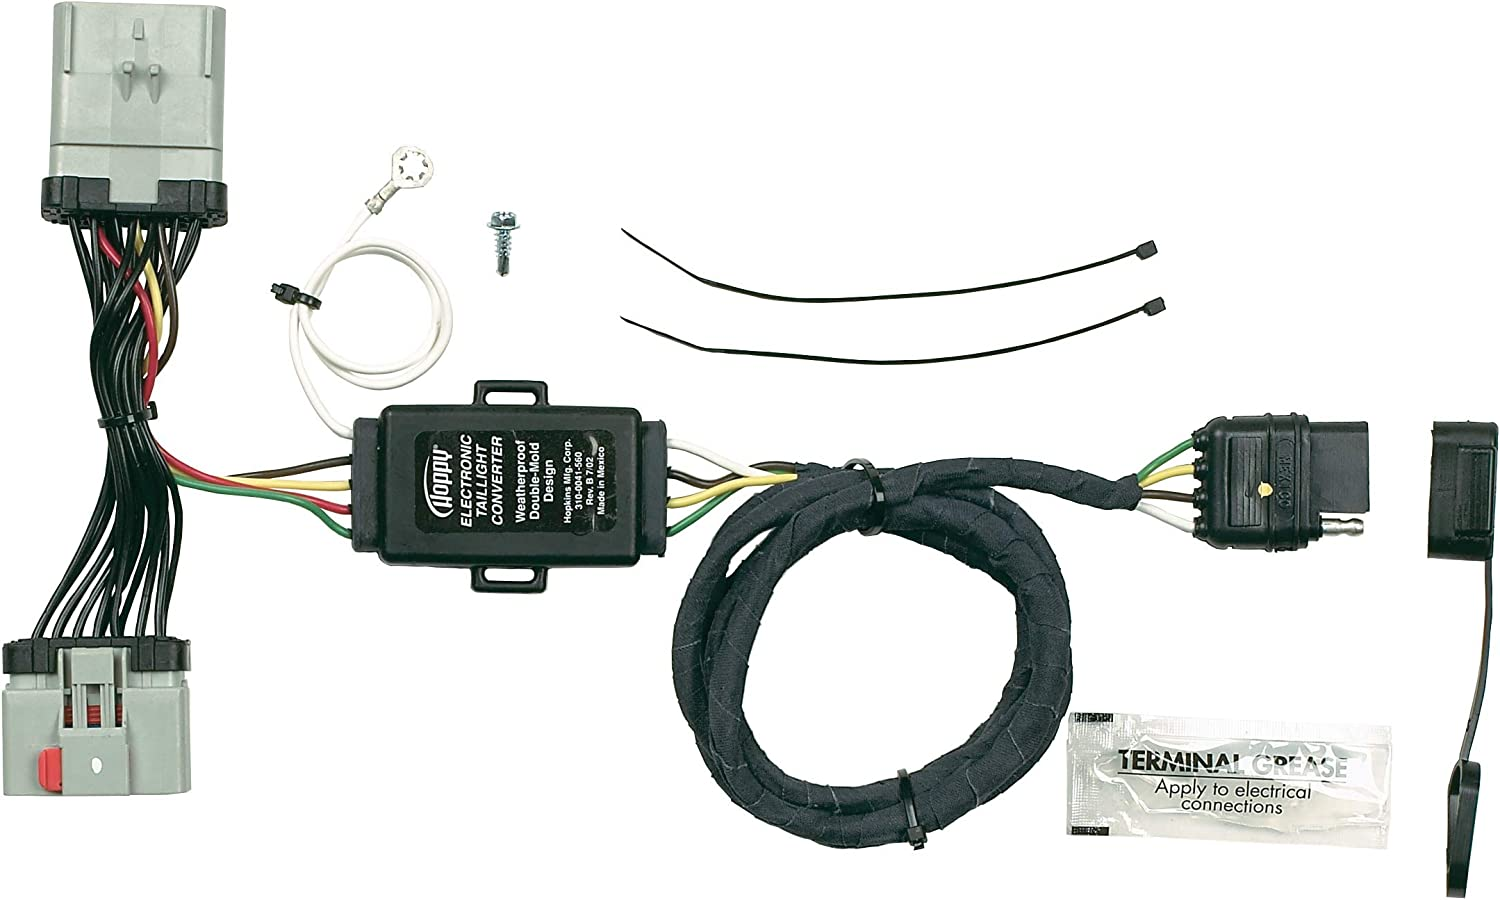 Amazon.com: Hopkins 42475 Plug-In Simple Vehicle Wiring Kit: Automotive  Amazon.com